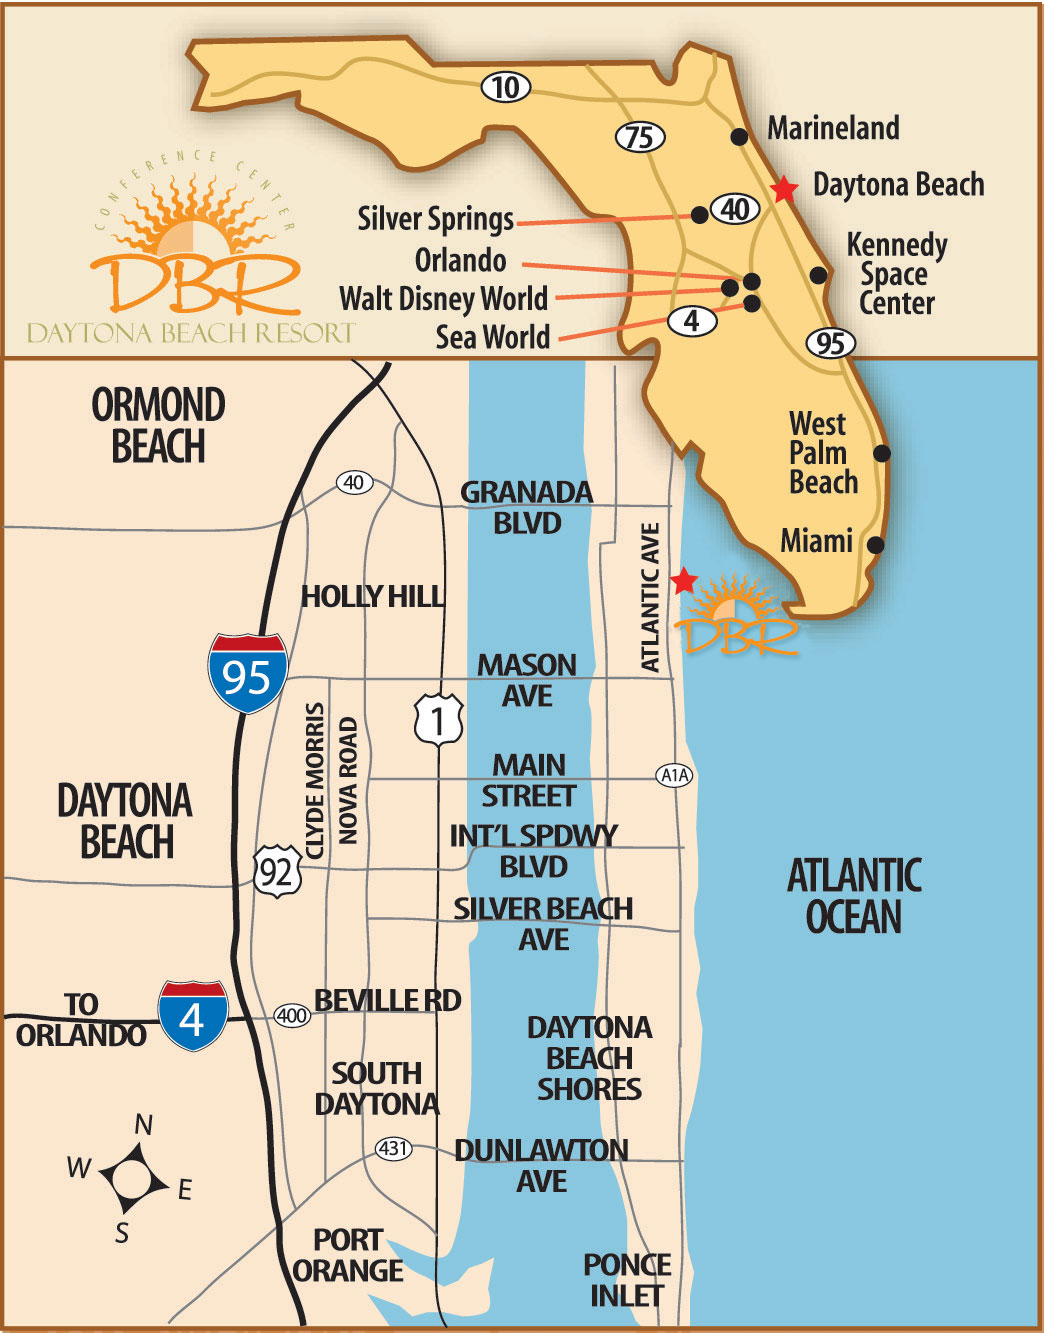 Daytona Beach Florida Spring Break 2019 Destinations